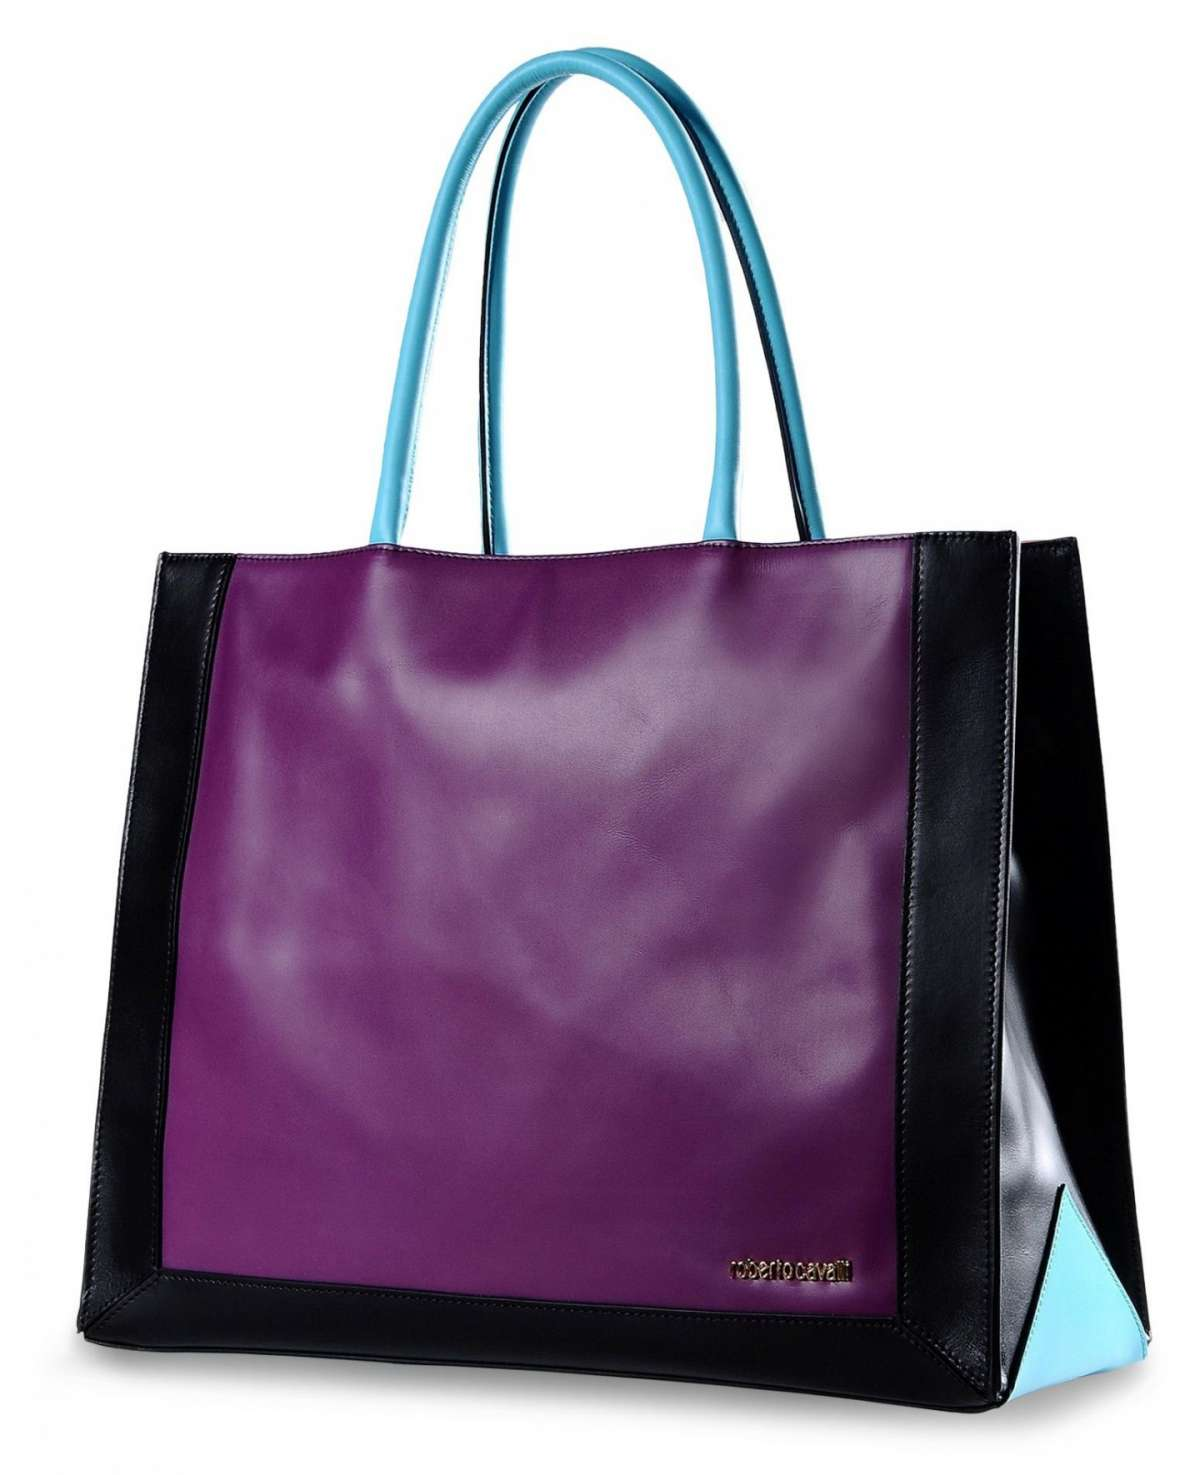 Tote in color block